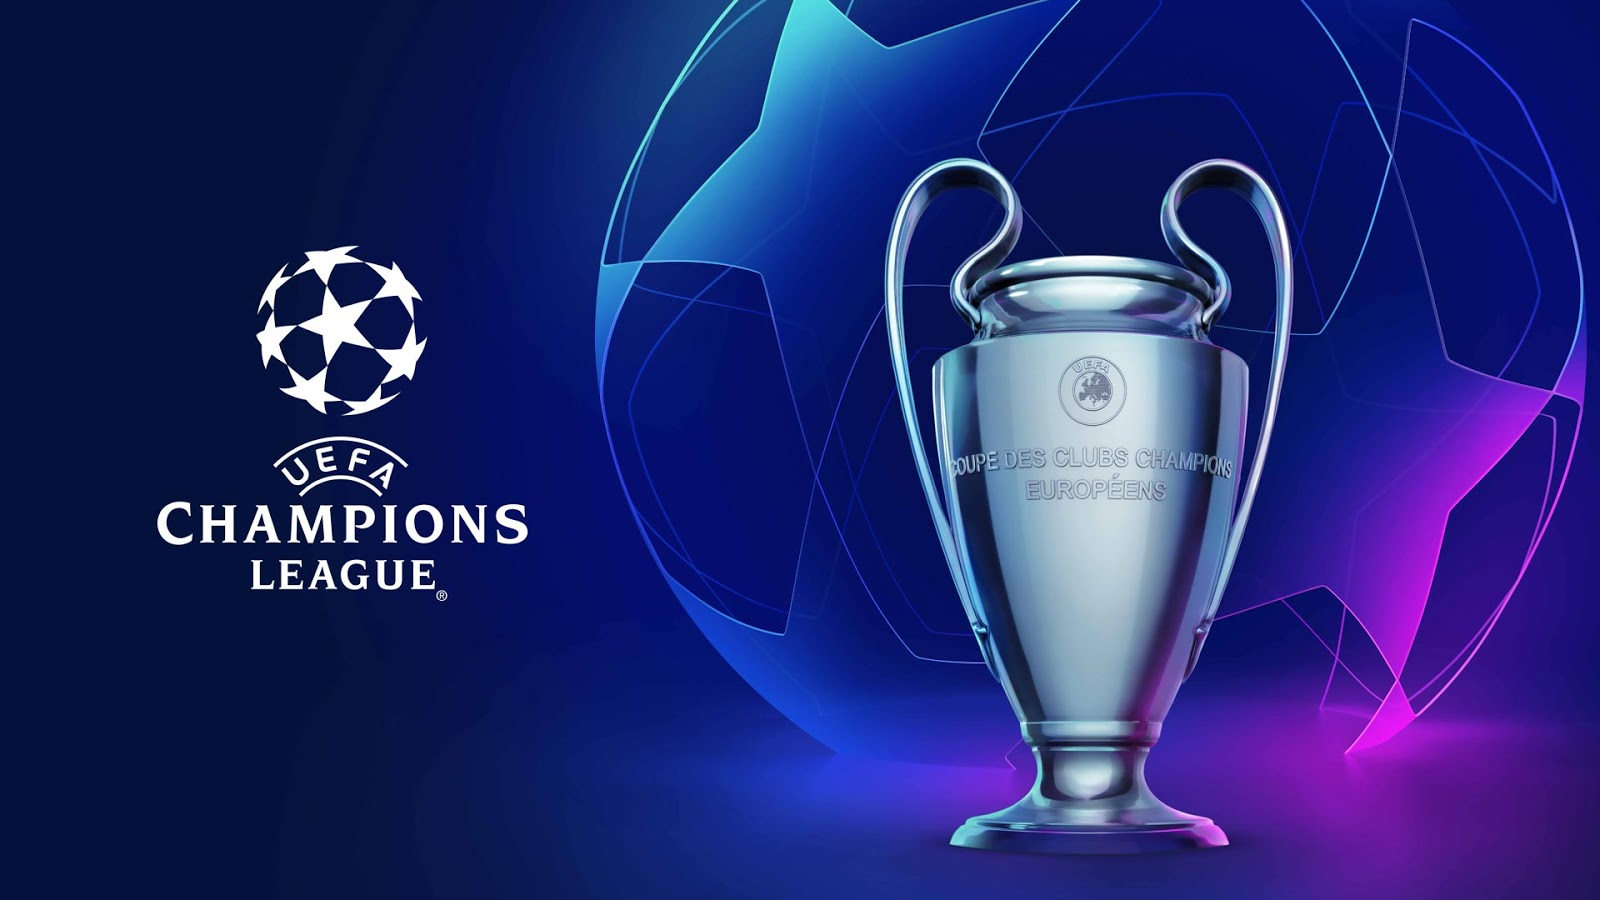 Champions League Benfica vs Bayern Munich